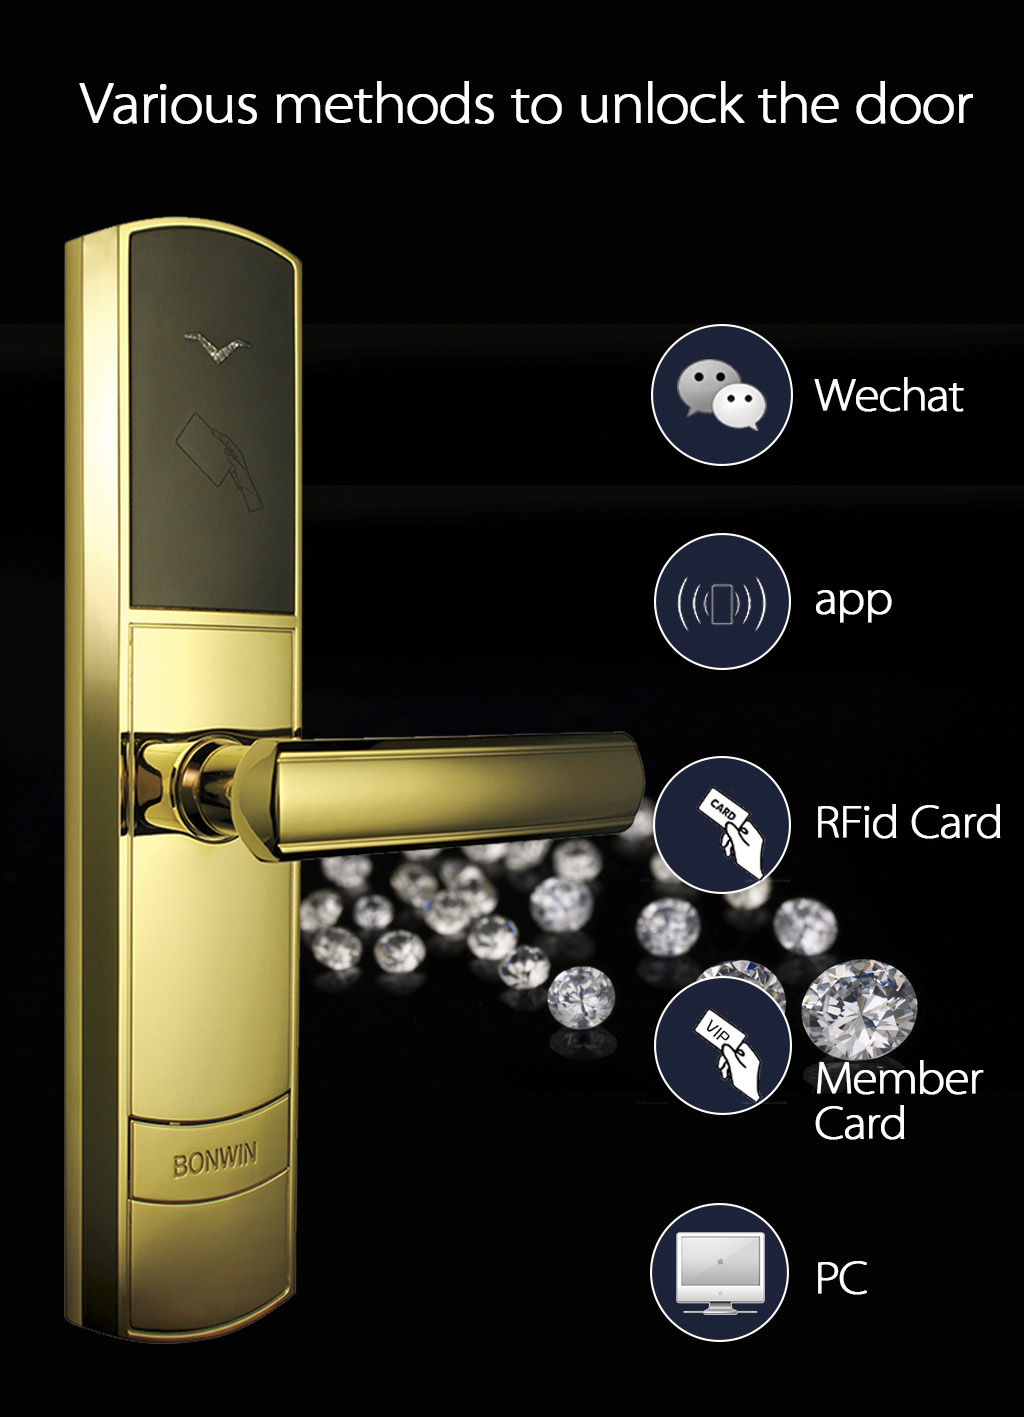 bonwin wireless electronic door locks uses subghz wireless sensor network technology and its frequency is mhz realizing the